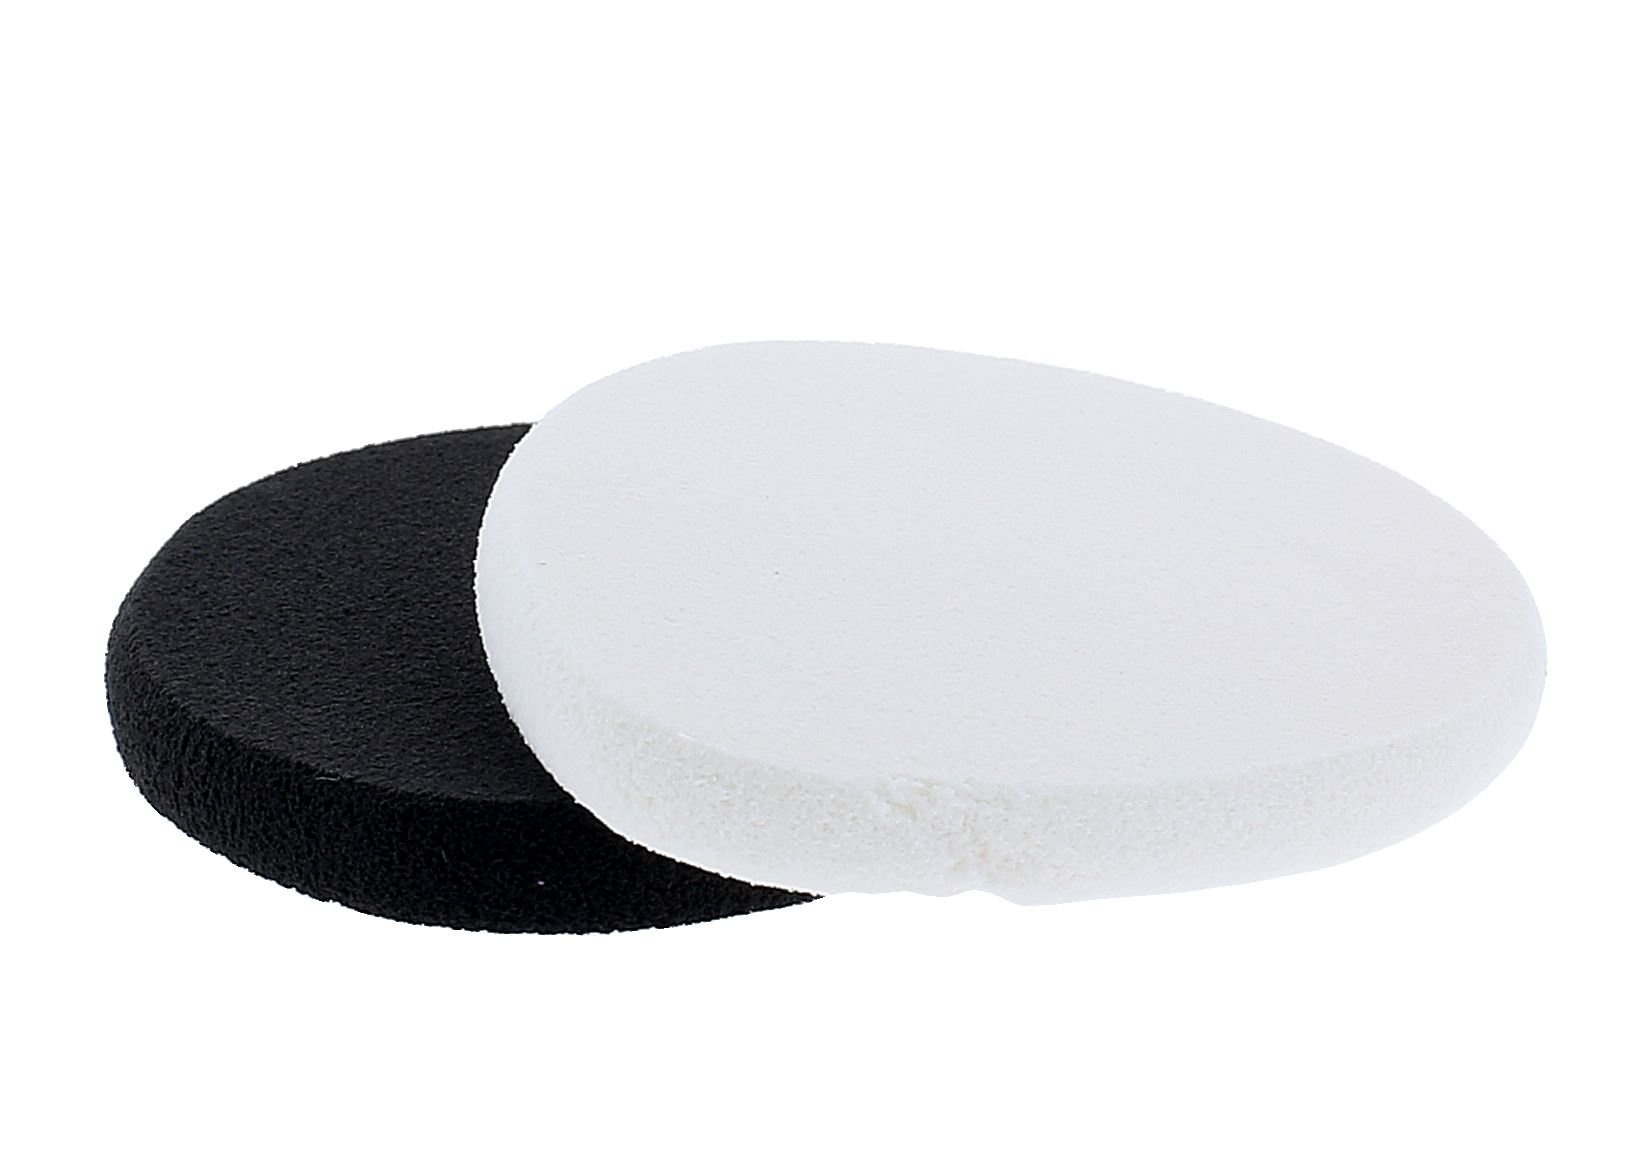 Sefiros Make-Up Sponge Cosmetic 2ml Black & White